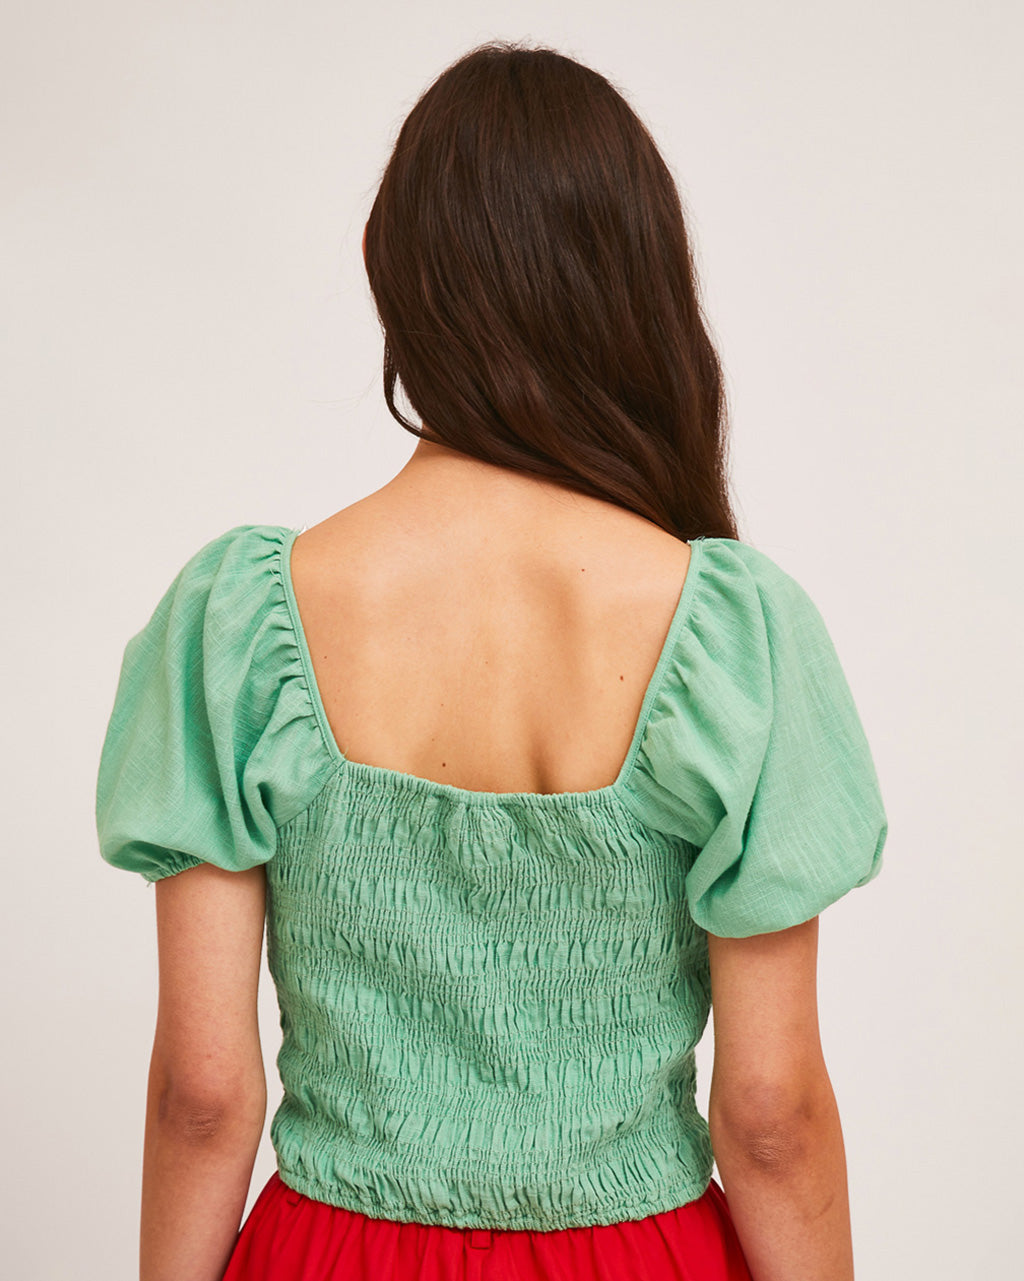 back view of model wearing green shirred blouse with puff sleeves and red shorts